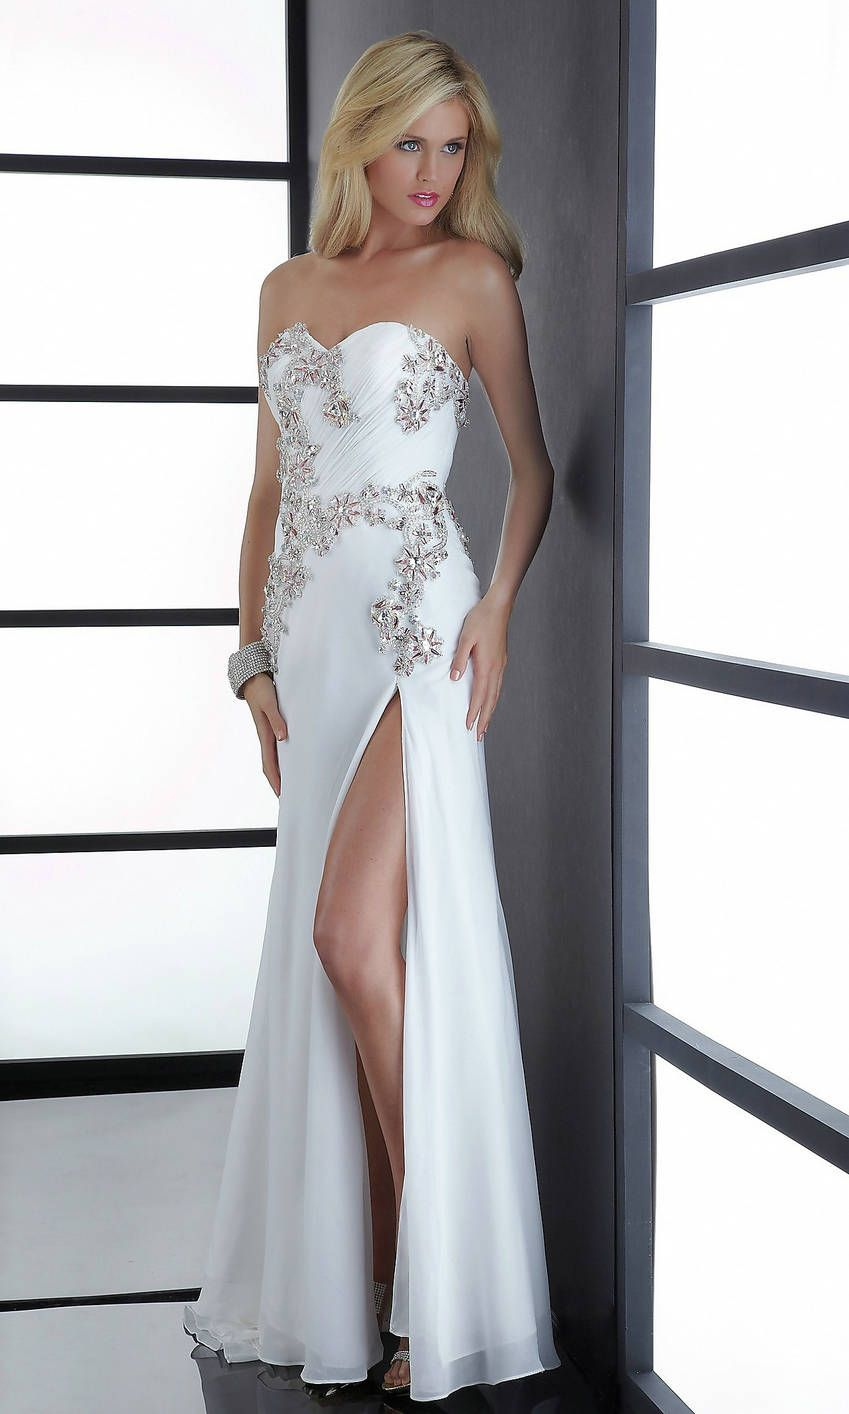 Collection Strapless White Long Dress Pictures - Reikian